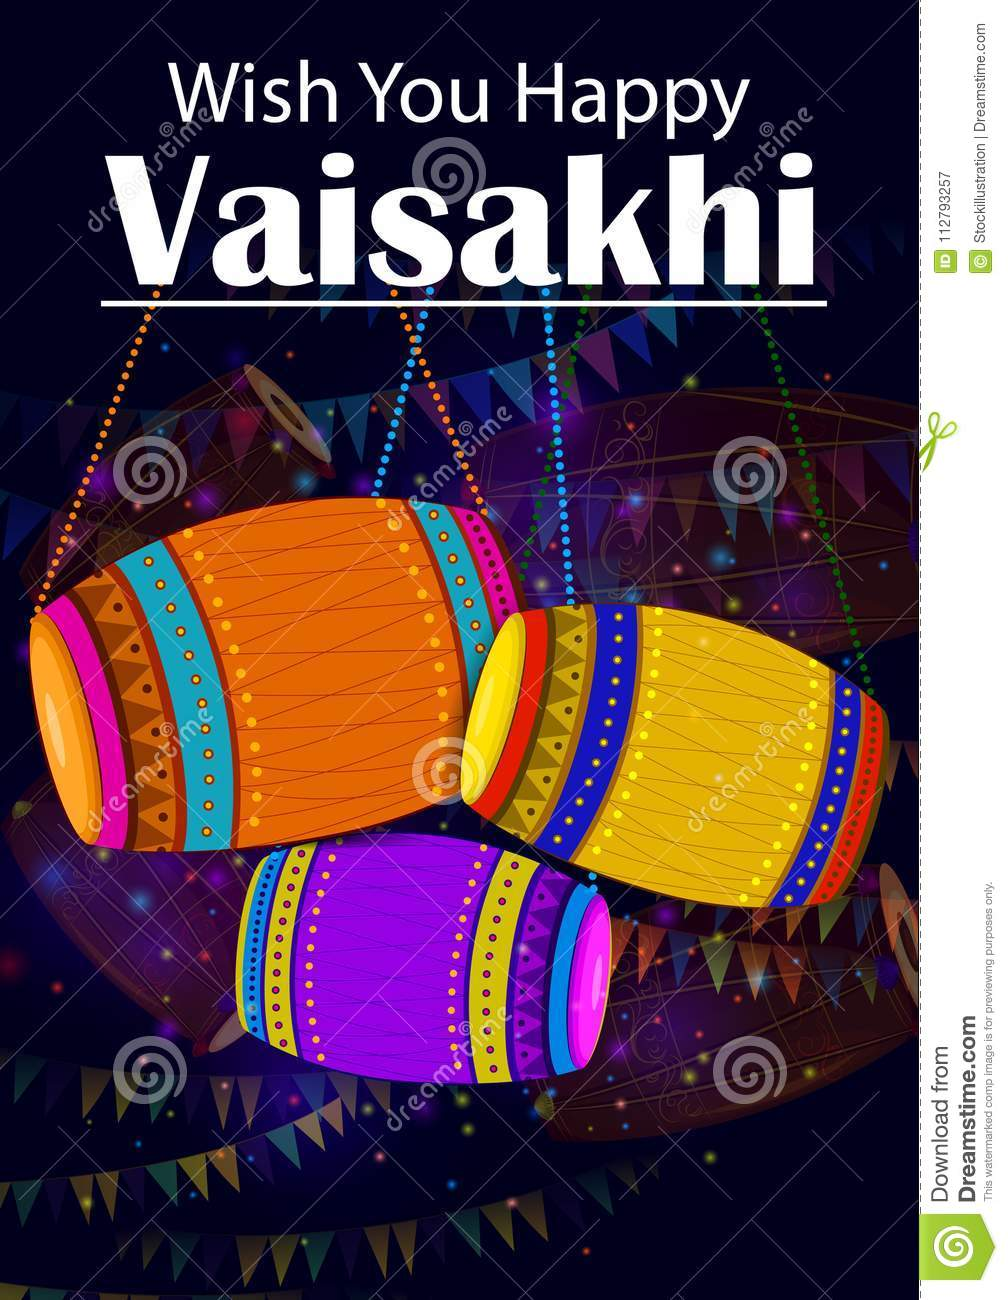 Happy Vaisakhi Punjabi Religious Holiday Background For New Year     Download Happy Vaisakhi Punjabi Religious Holiday Background For New Year  Festival Of Punjab India Stock Vector